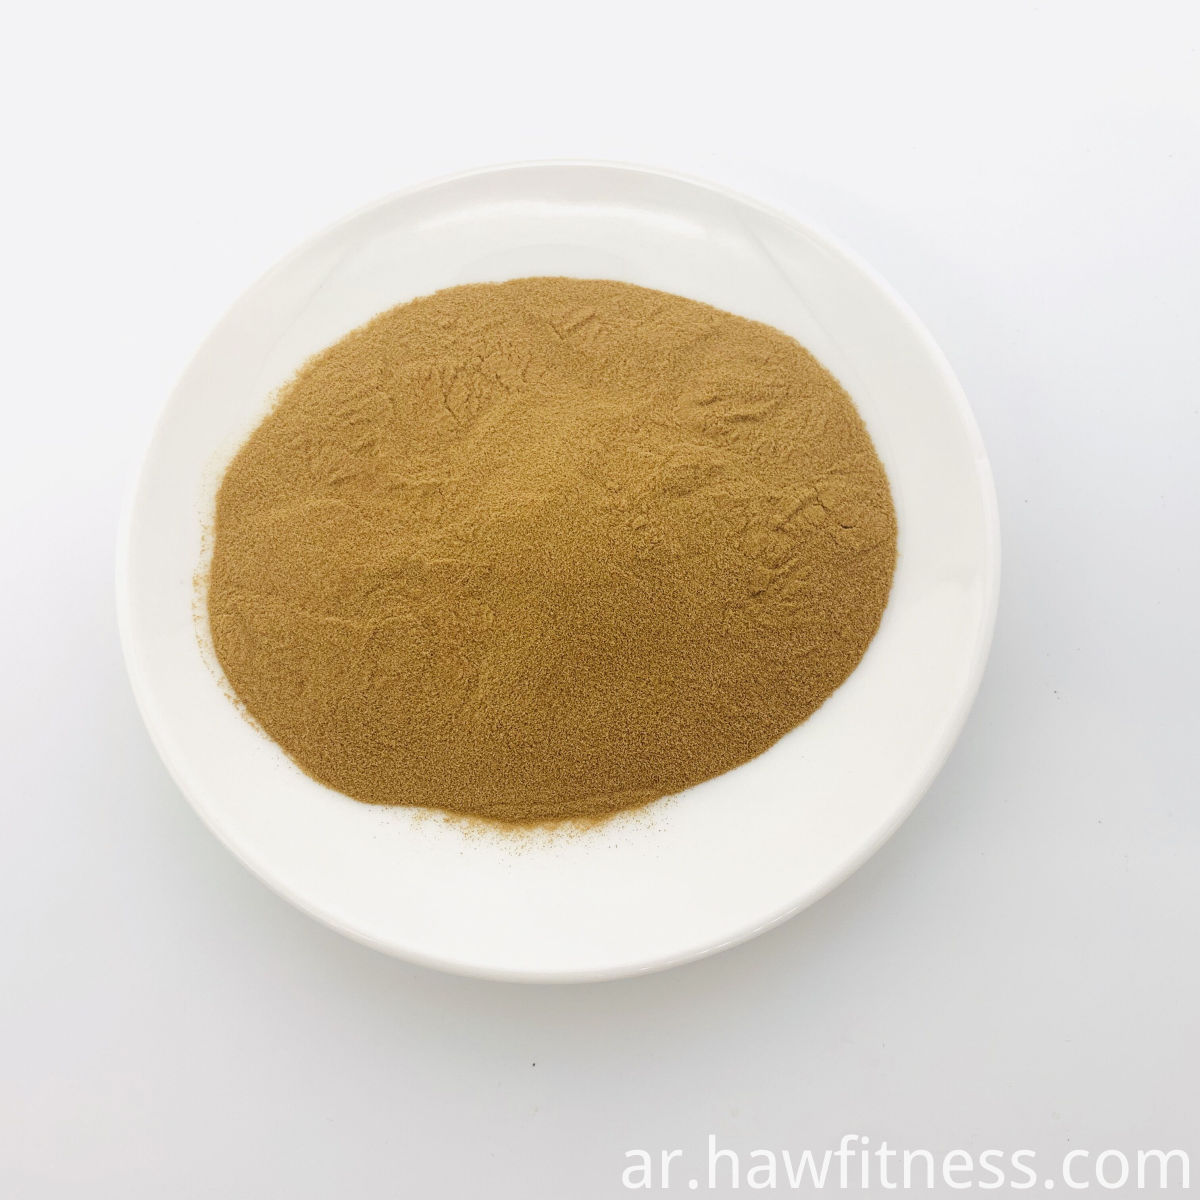 Water Soluble Lemon Extract